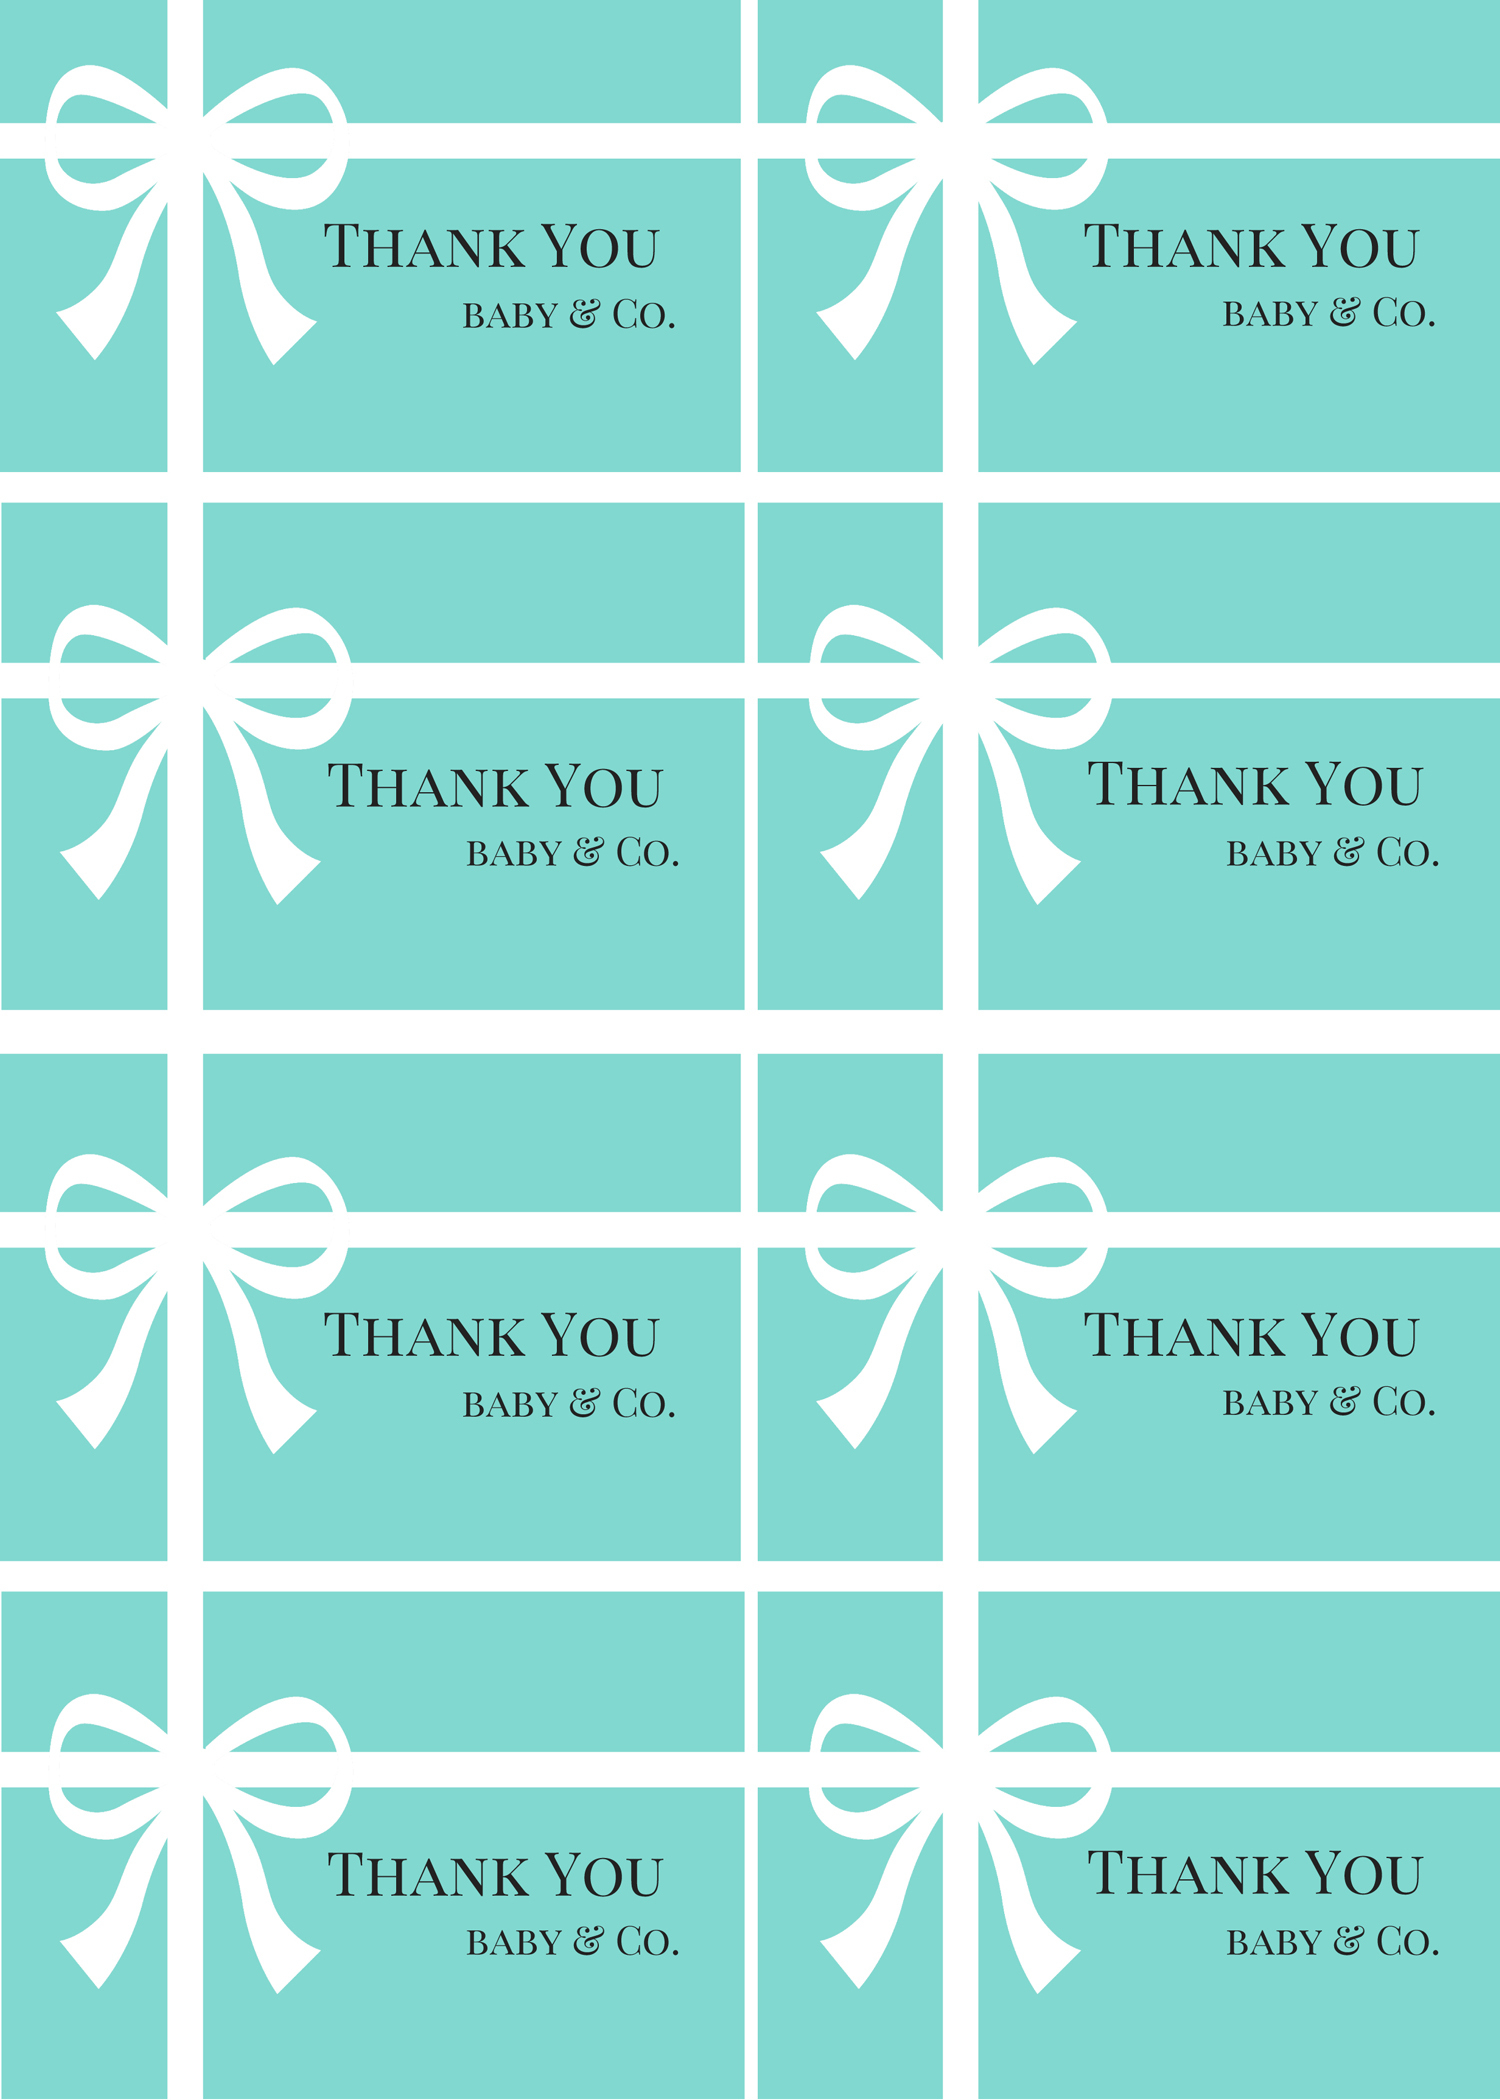 Free Baby Shower Thank You Tags Printables - Baby Shower Ideas - Free Printable Baby Shower Label Templates